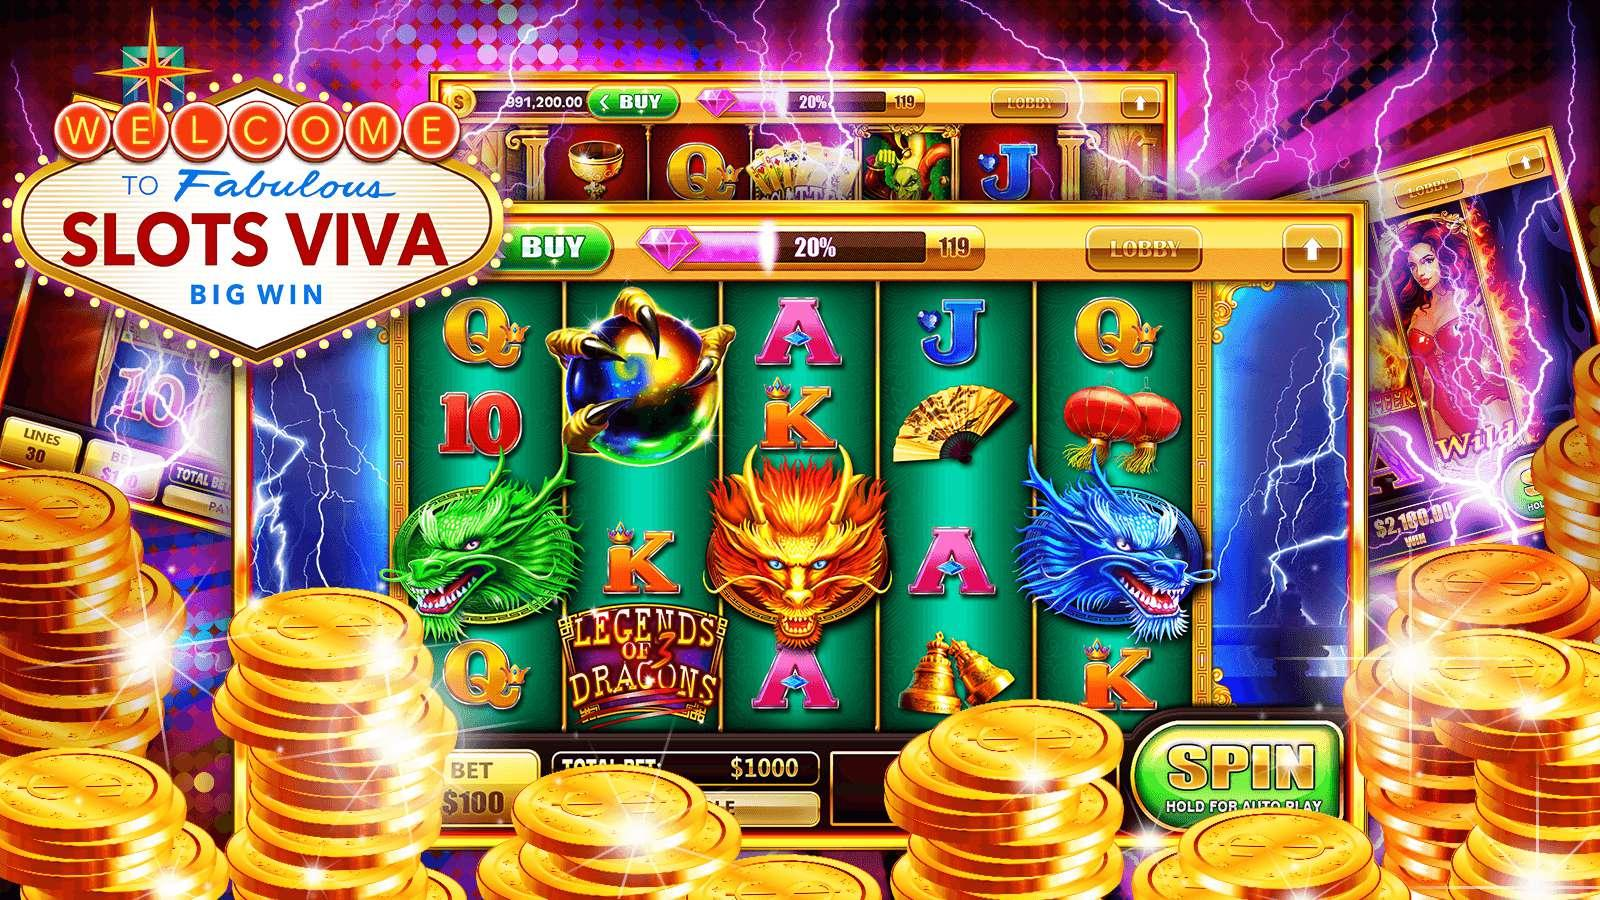 viva slot machine